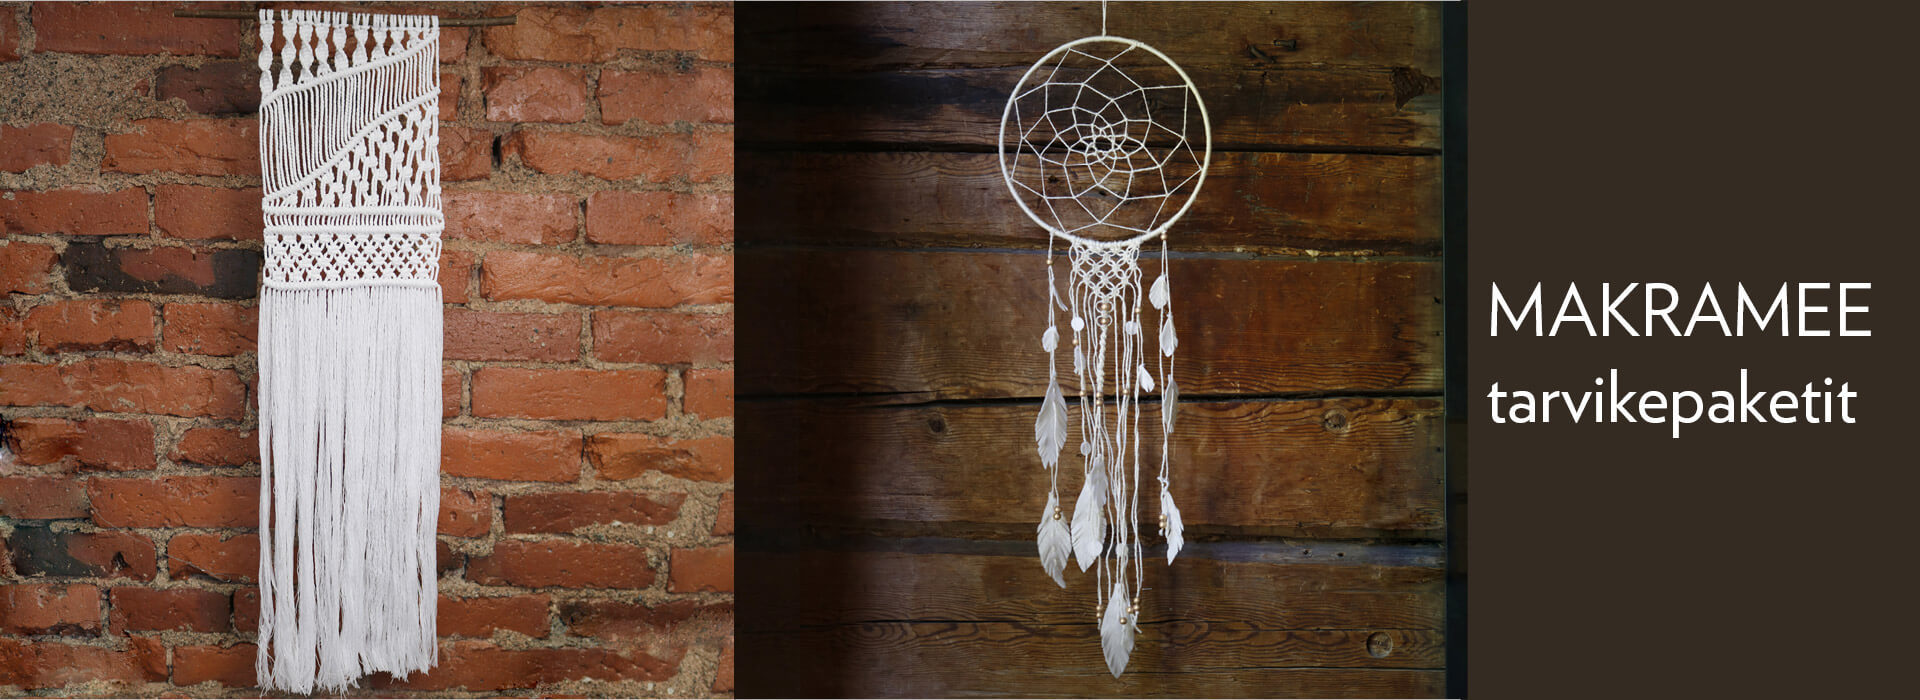 Macrame – master knotting decorative textiles, wall hangings, or jewelry